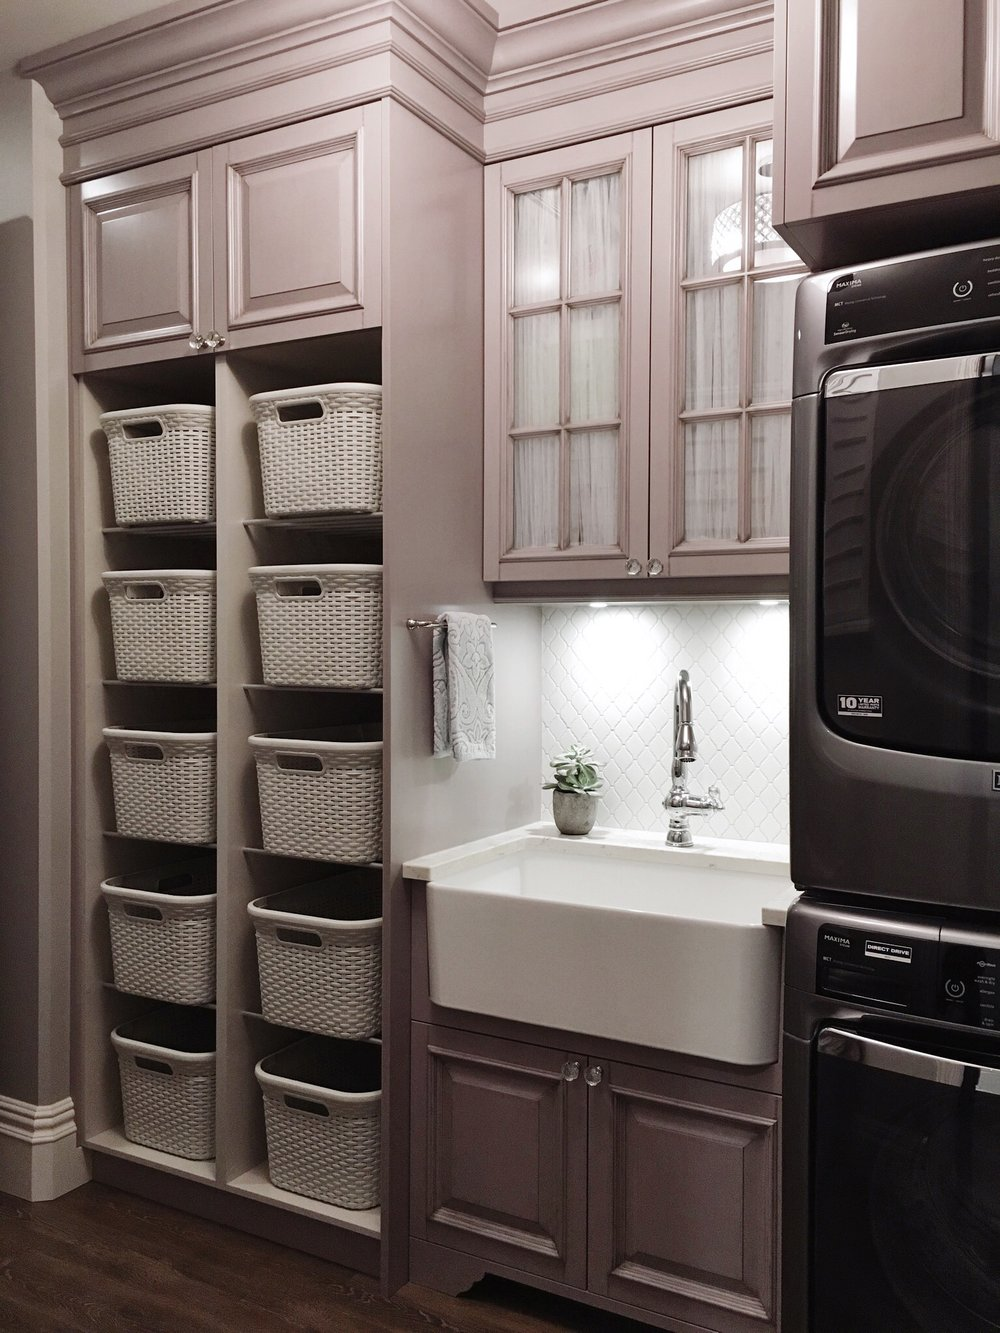 12 laundry room ideas for big families building or renovating jan 12 12 laundry room ideas for big families building or renovating solutioingenieria Gallery